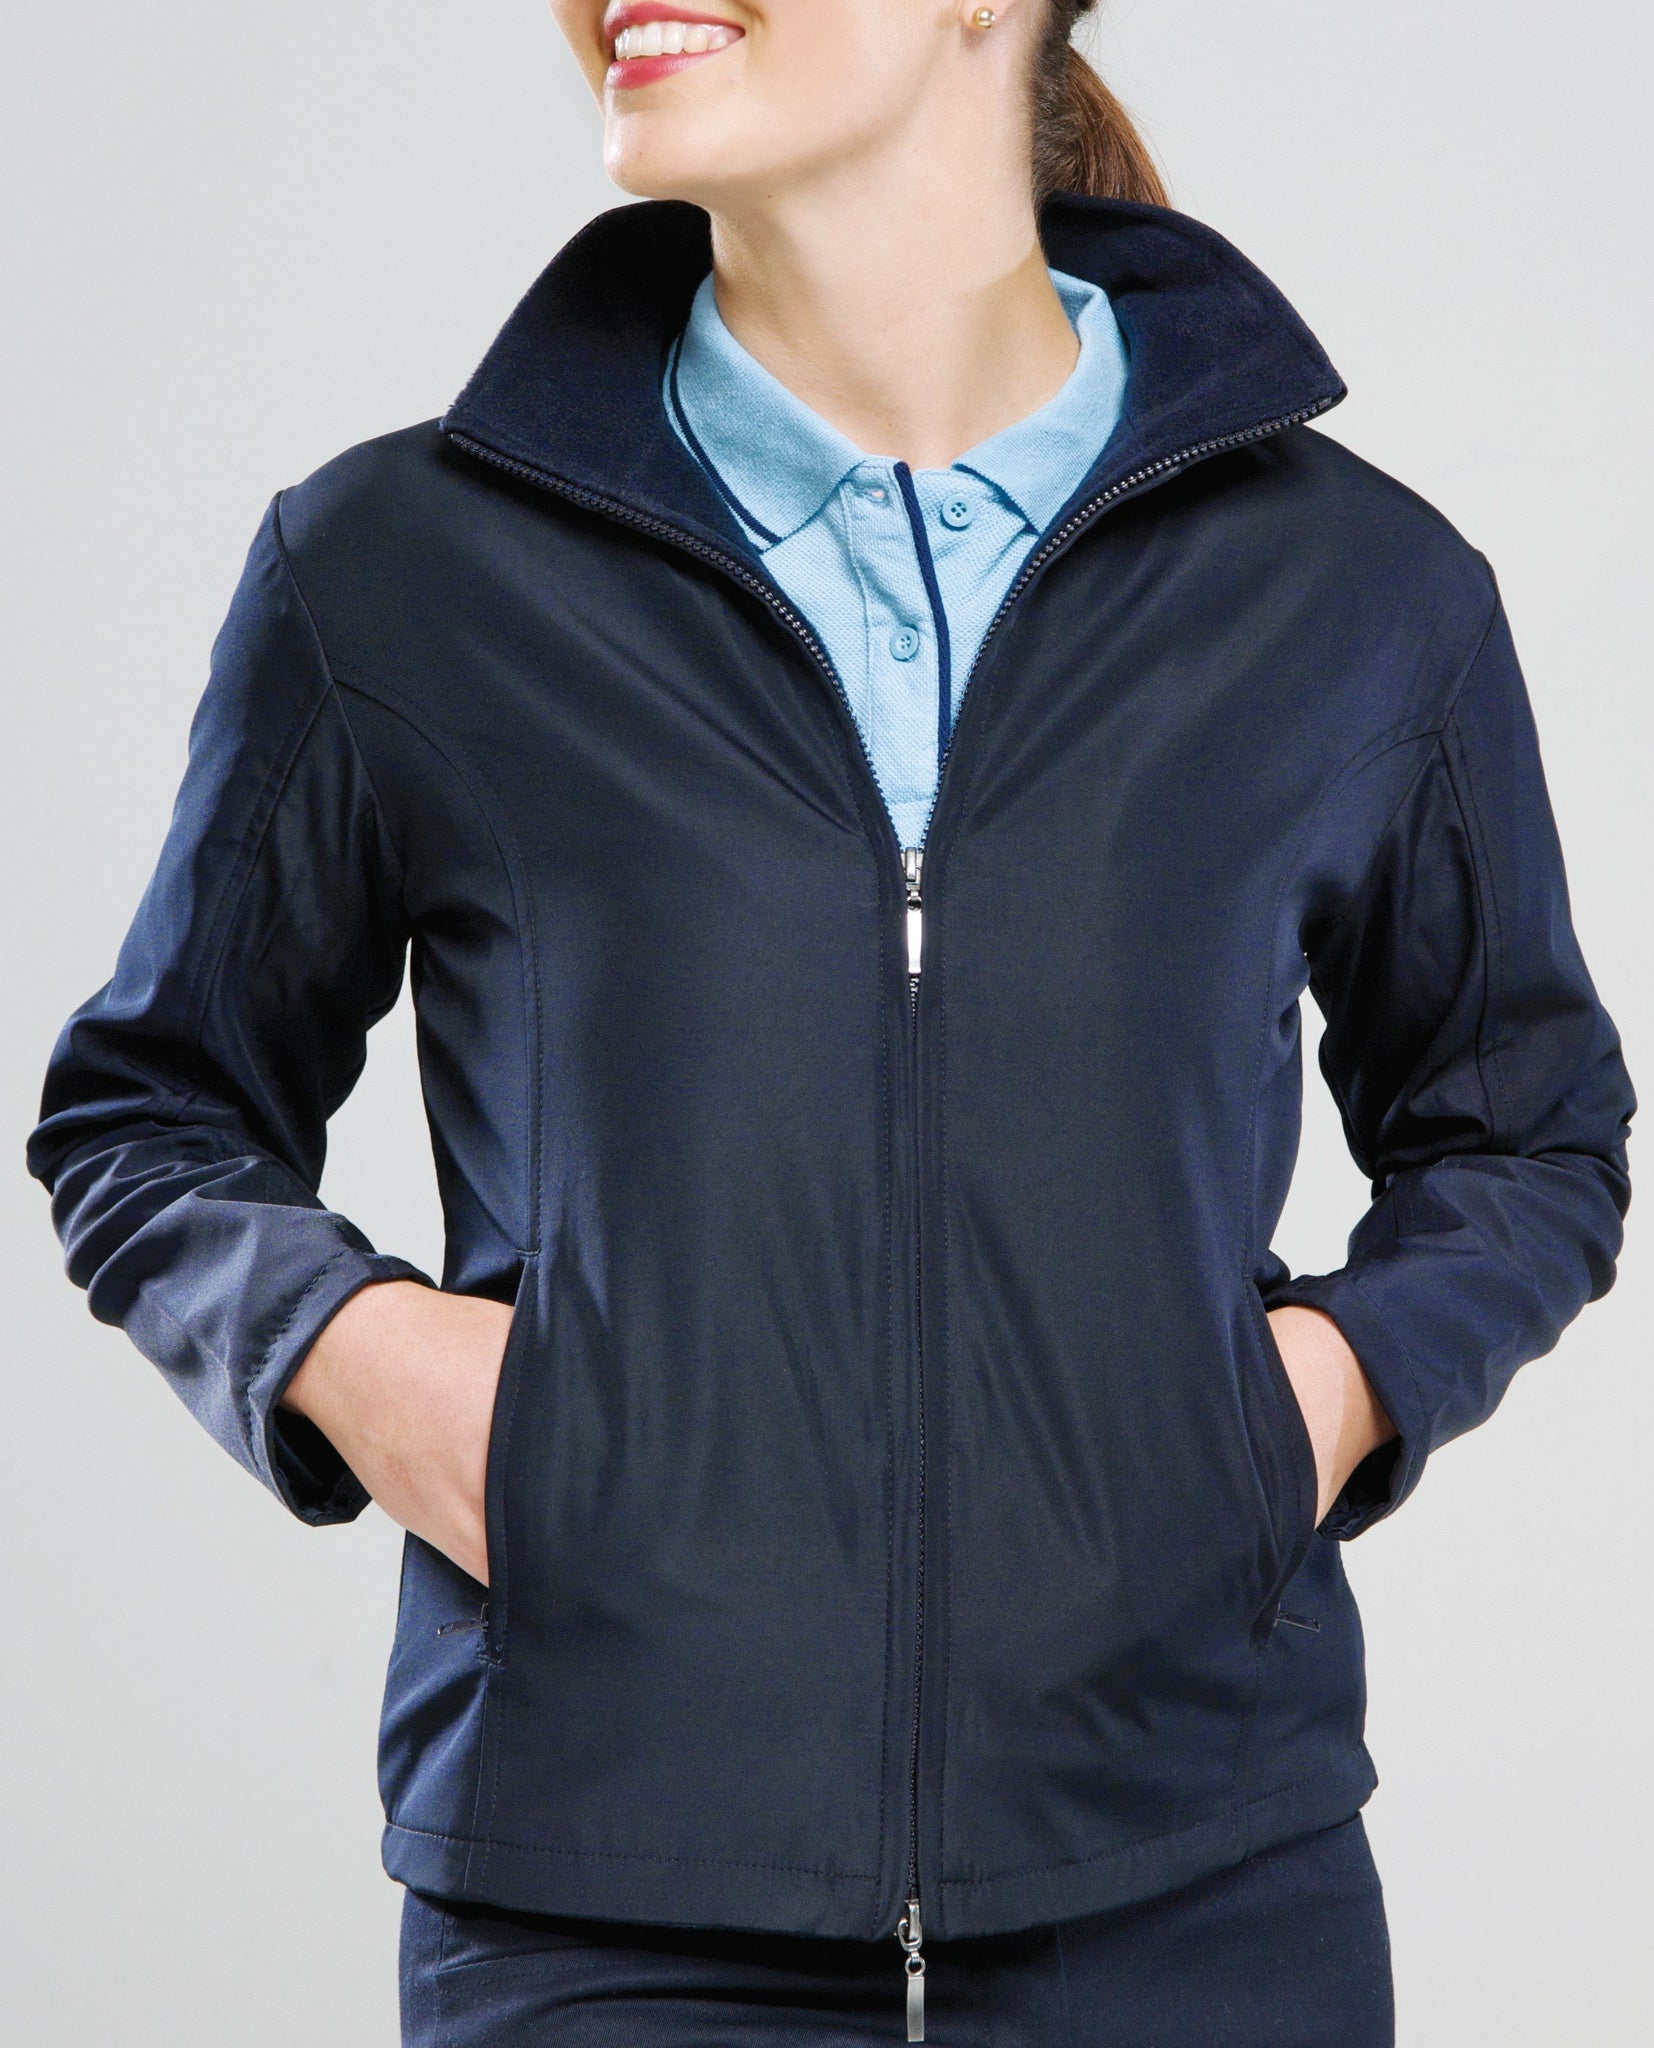 Womens Club Reversible Navy Jacket